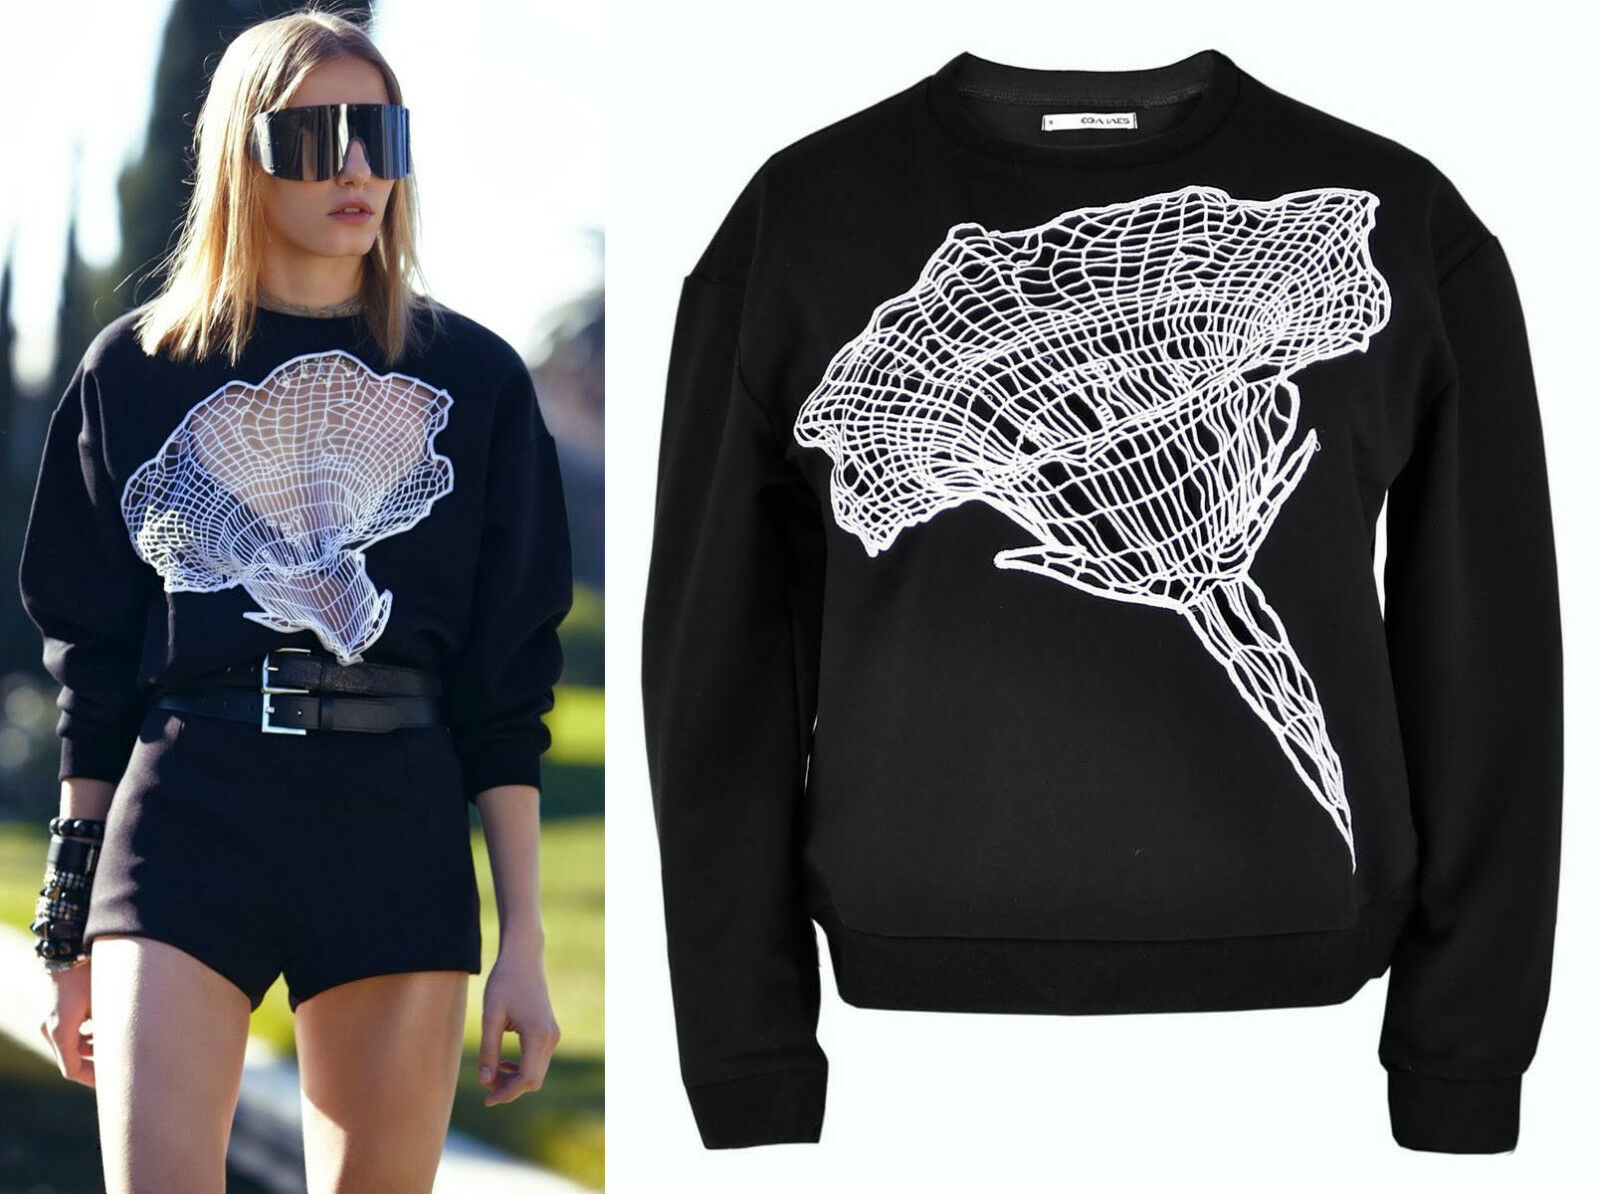 schwarz Weiß Cut-out See-through Lace Emboriderot Flower Digital Sweatshirt Top